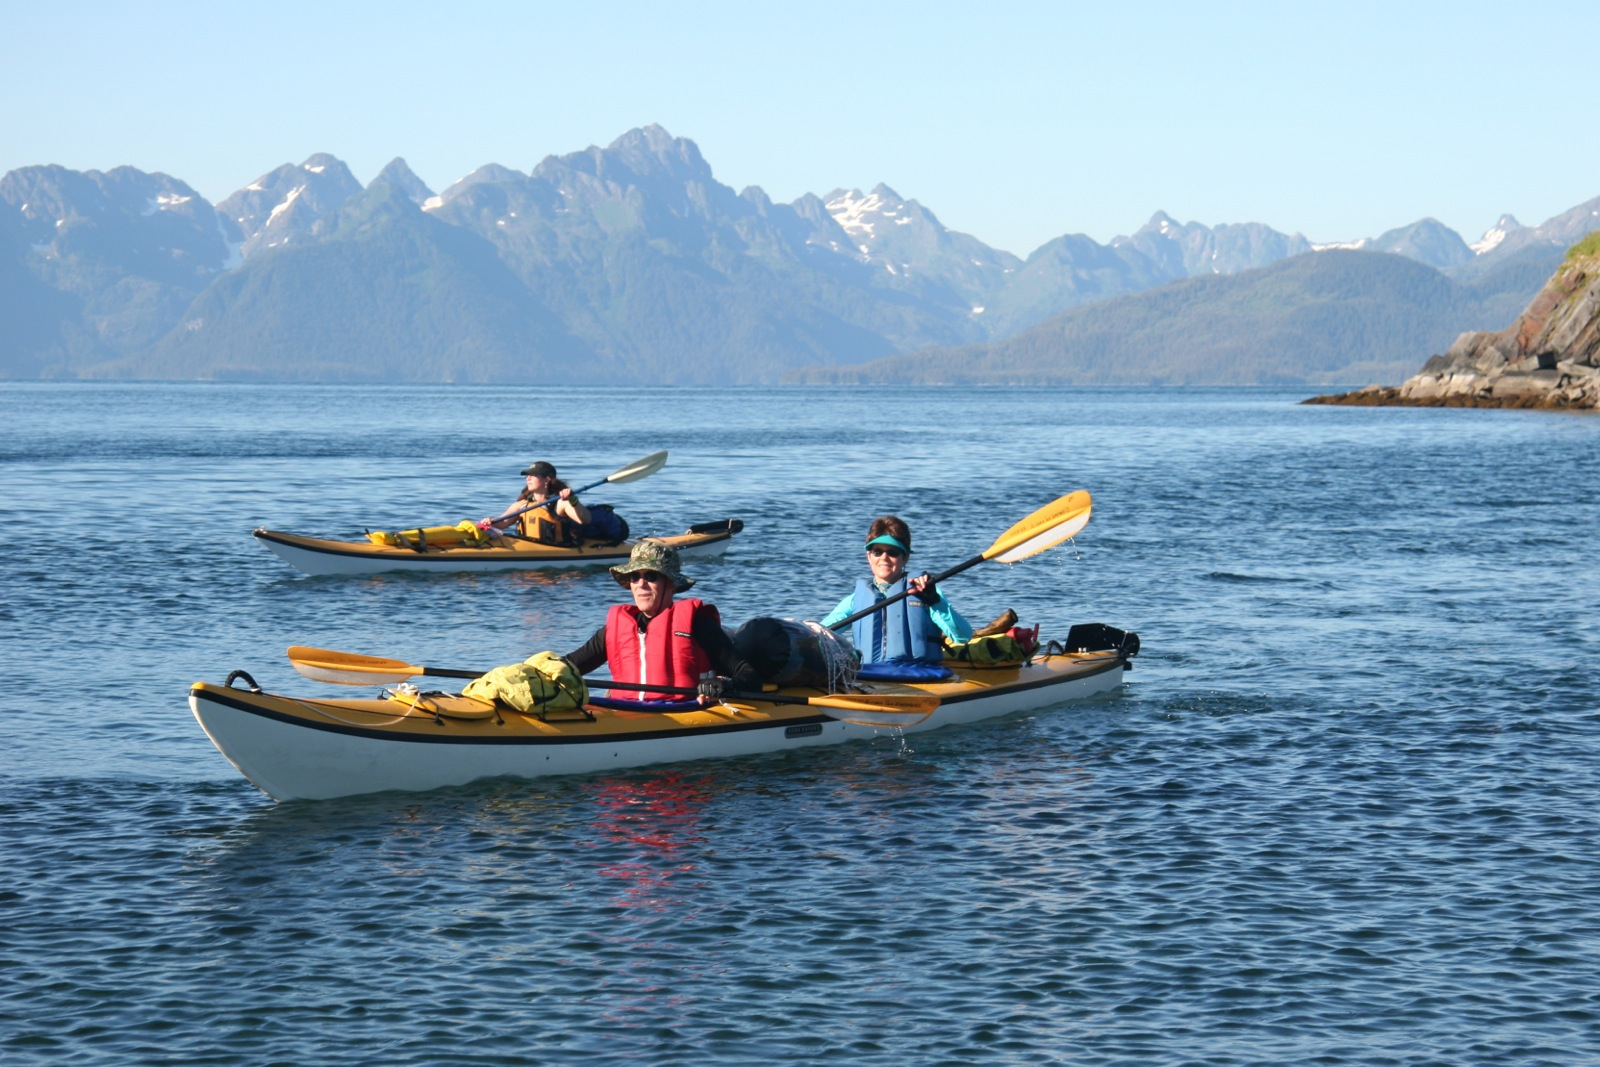 Sea kayaks paddle near Chenega Island in Prince William Sound with mountains in the background.